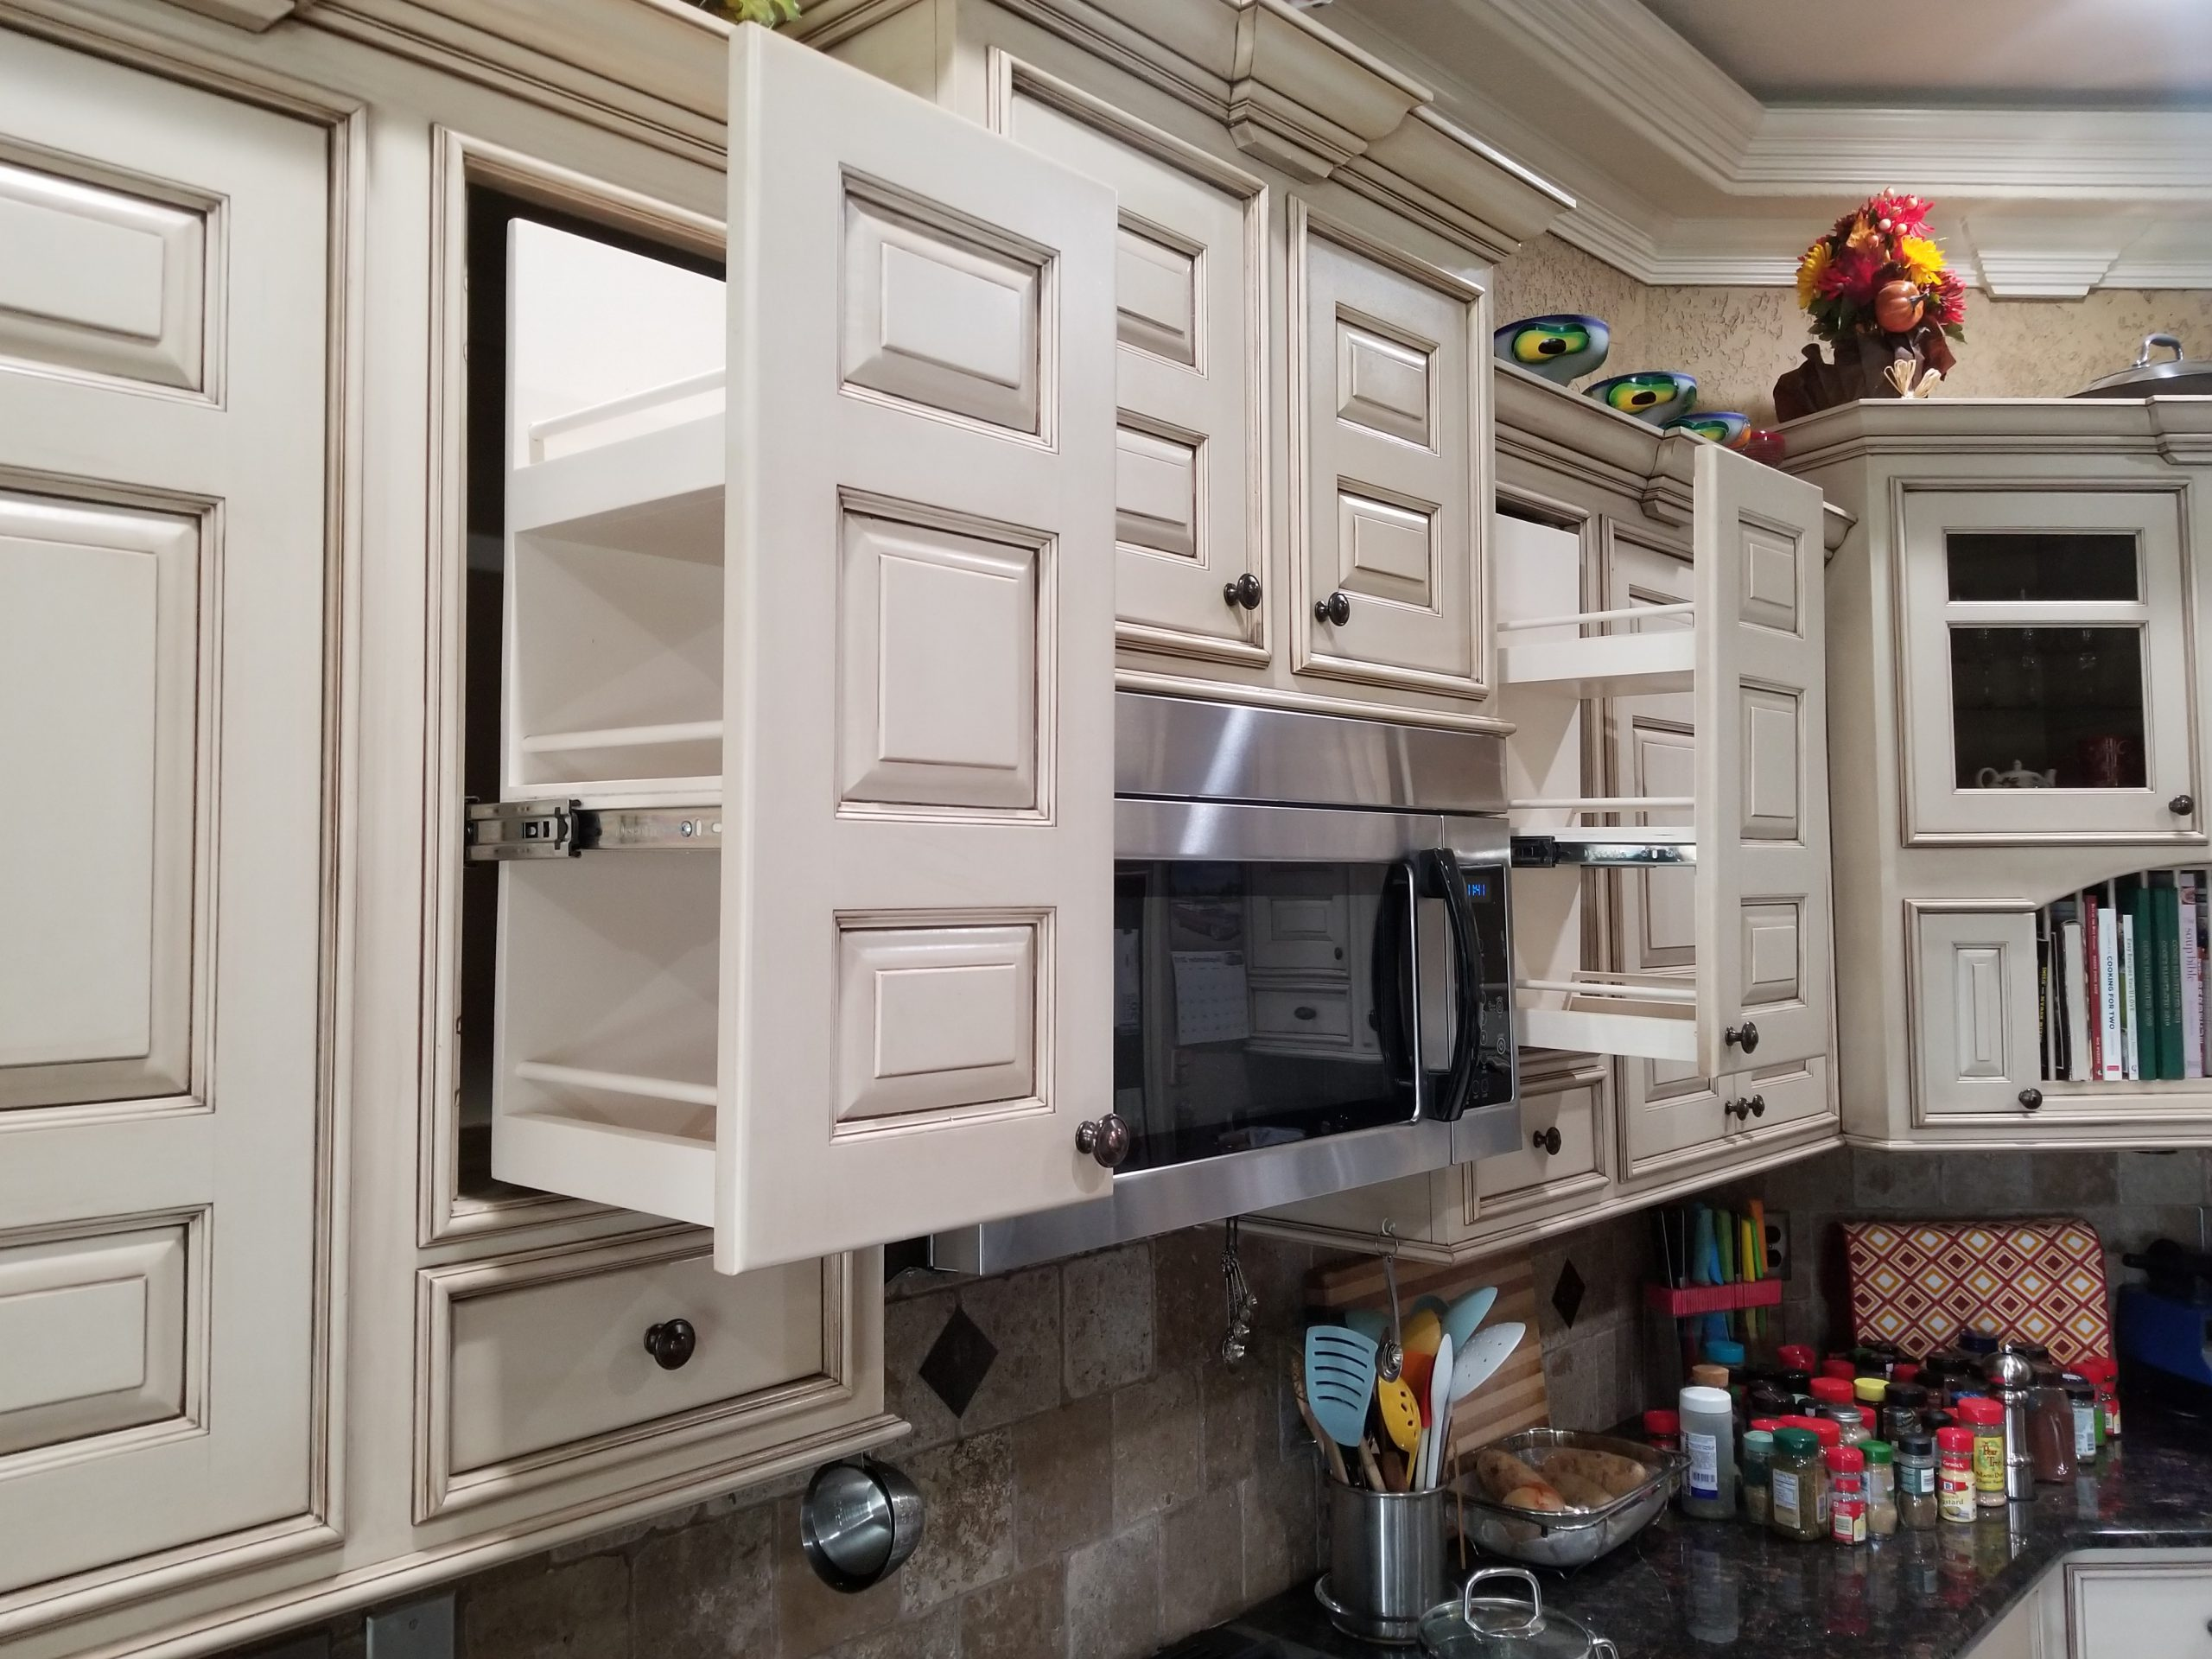 Buy custom traditional kitchen cabinets factory direct in Belmar NJ, Buy custom slab panel kitchen cabinets factory direct in Belmar NJ, Buy custom flat panel kitchen cabinets factory direct in Belmar NJ